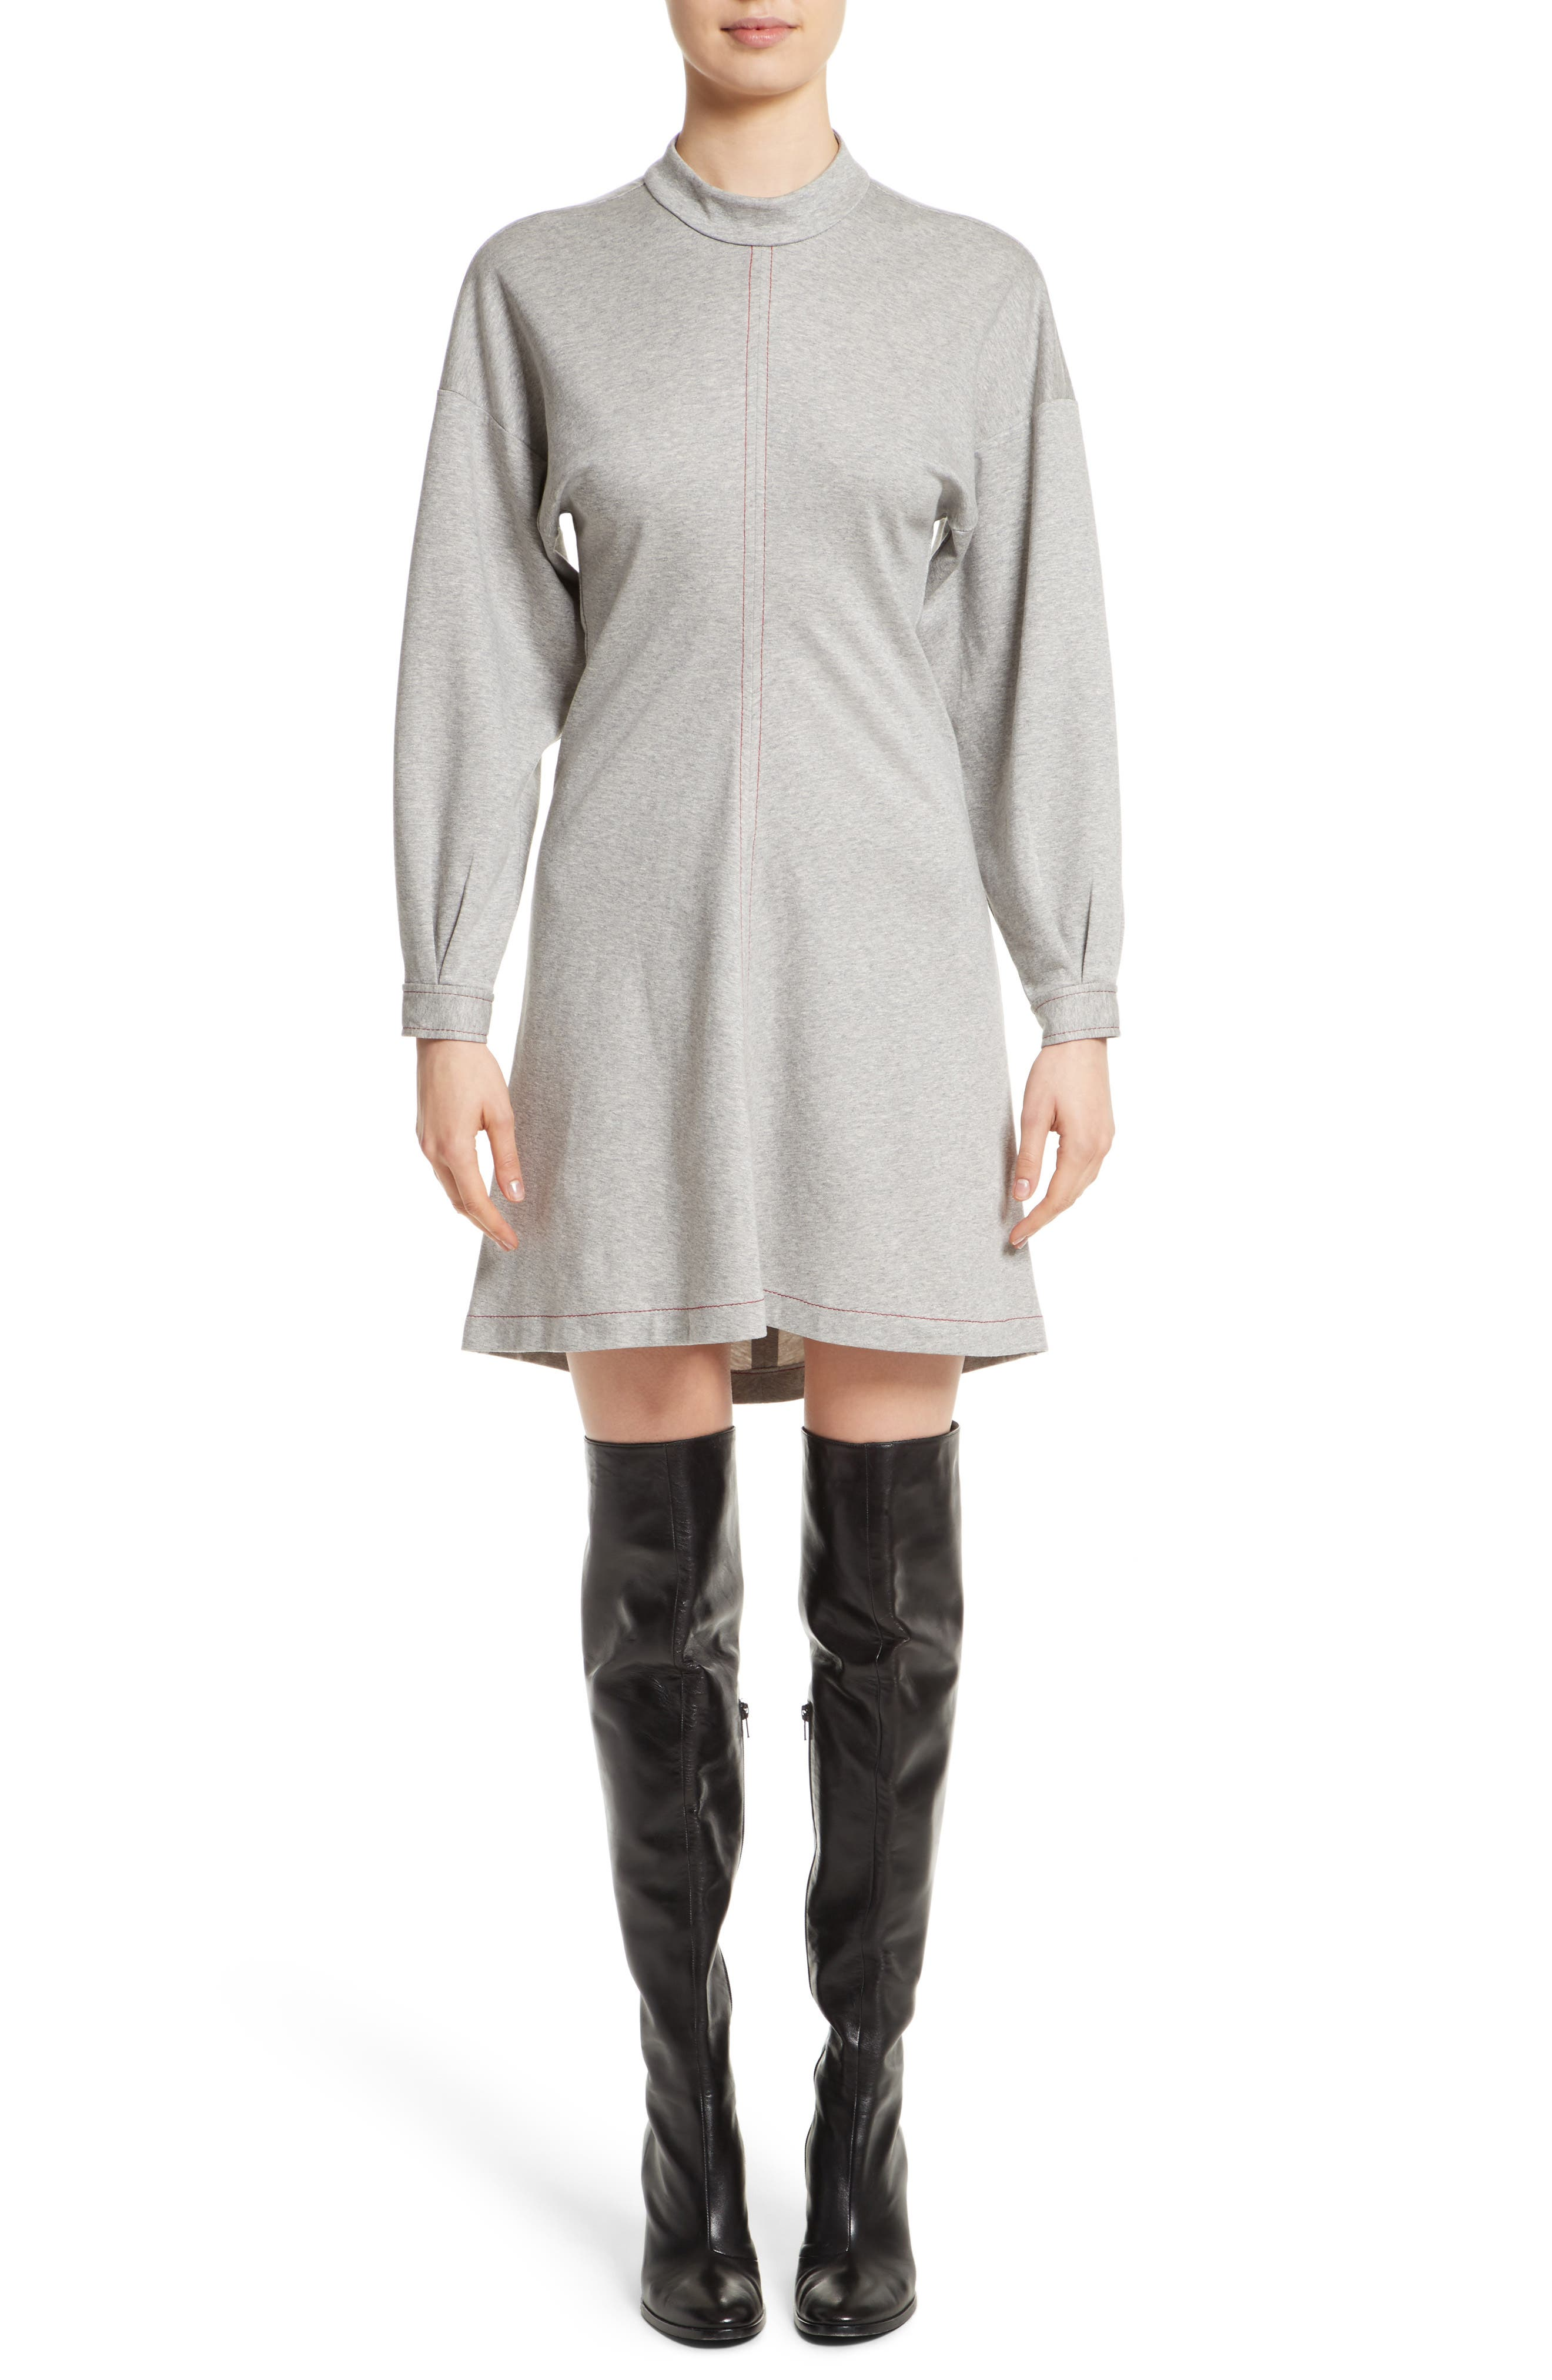 Colovos Mock Neck Sweatshirt Dress